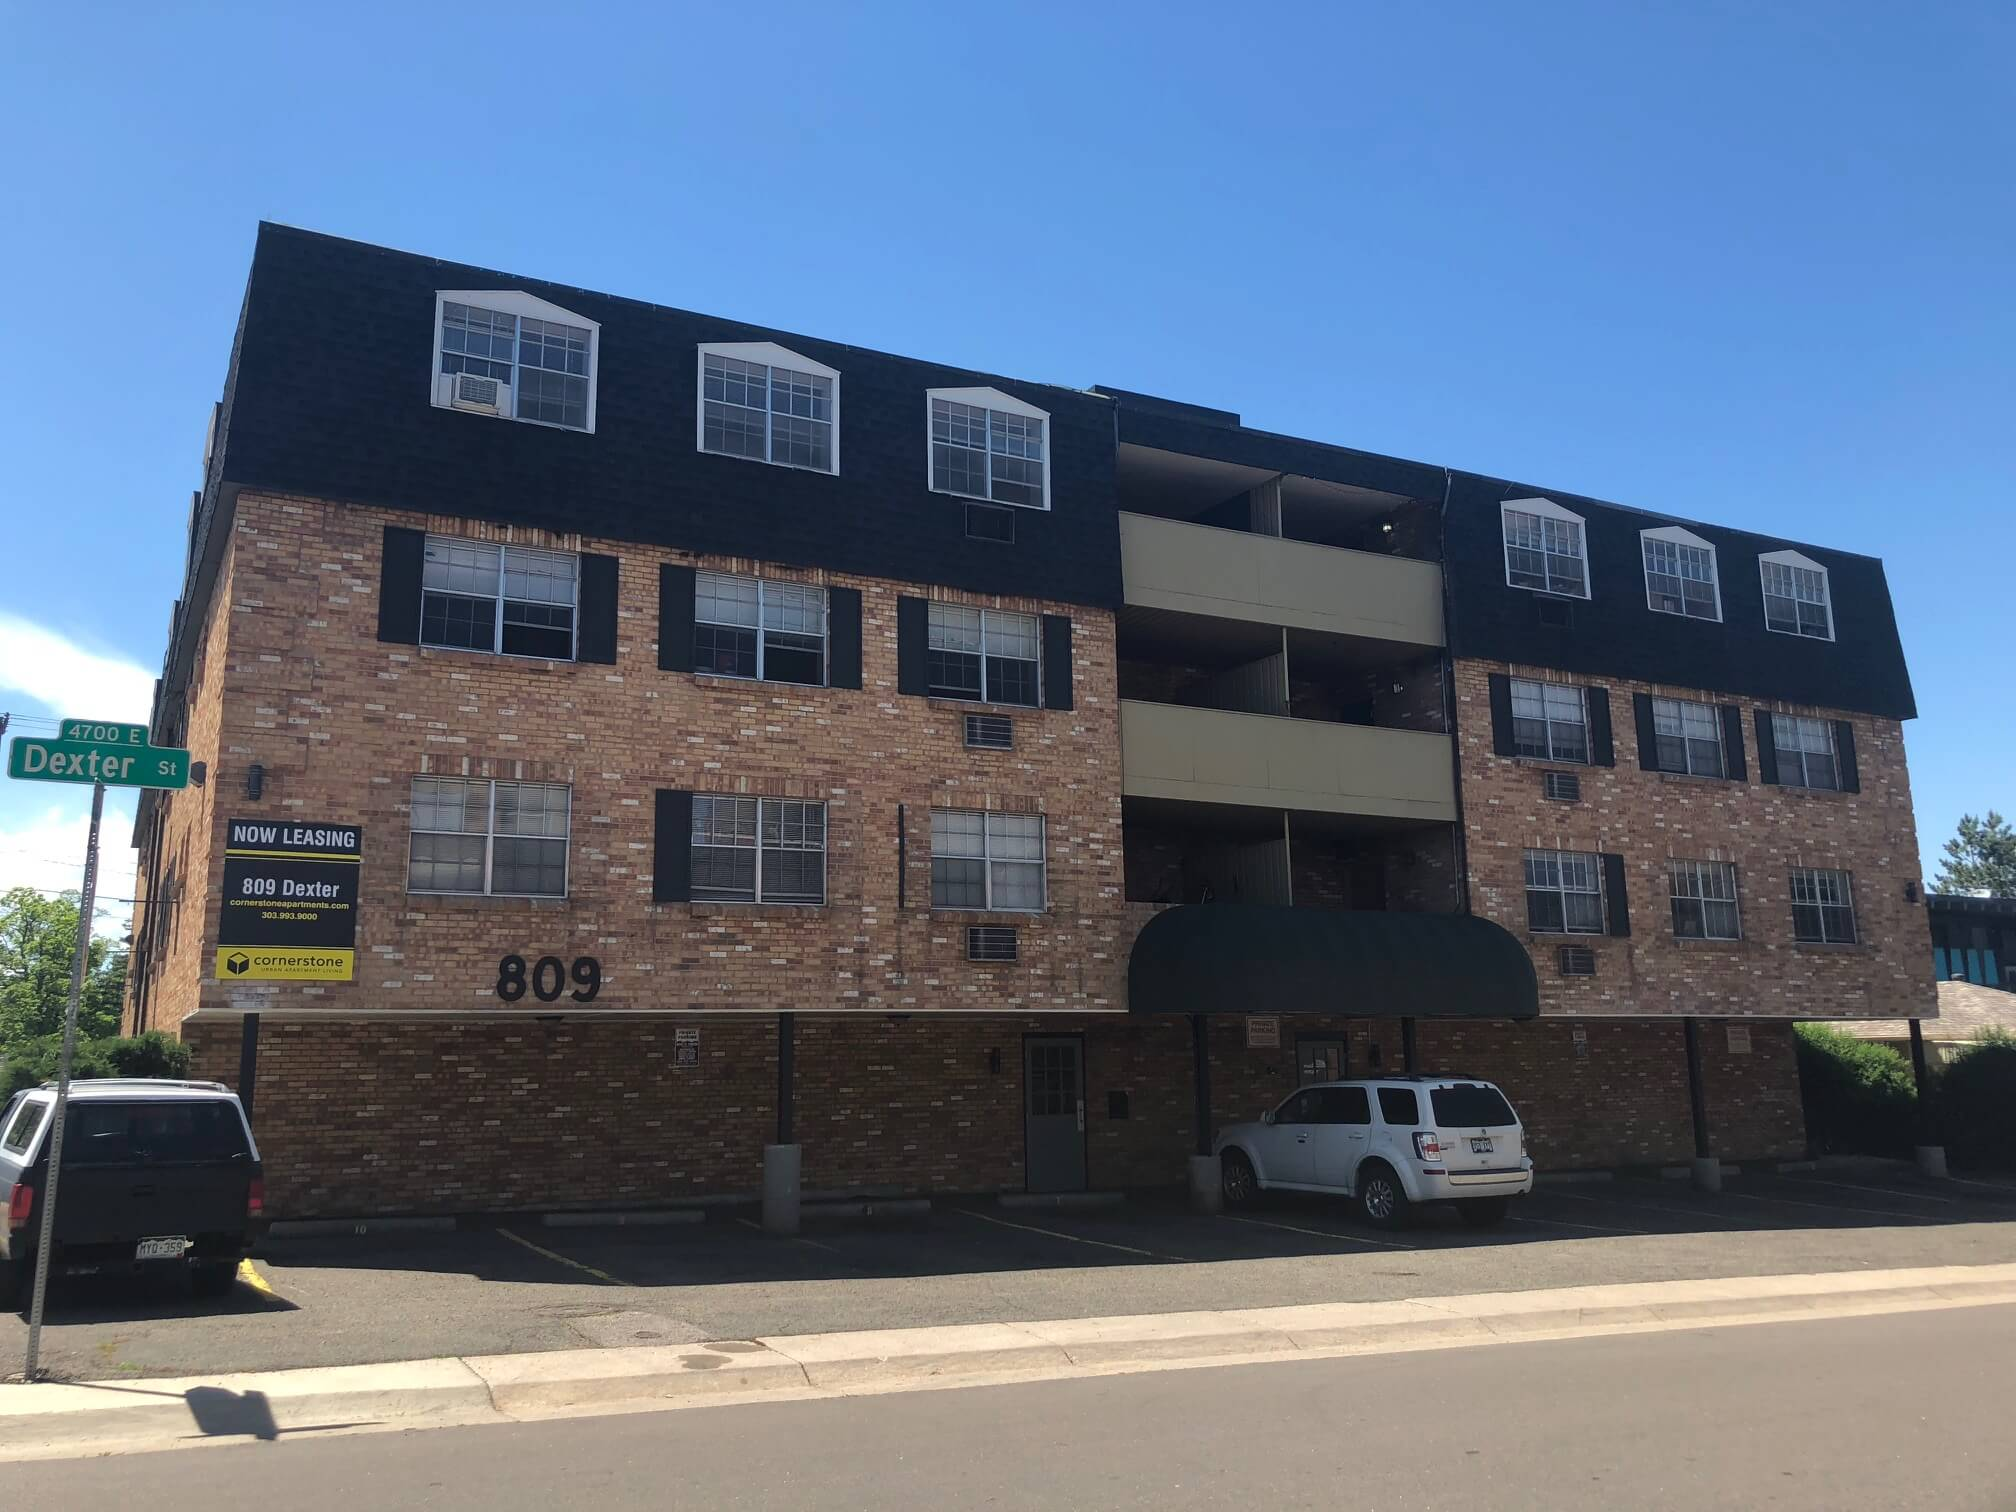 Hanford House Apartments Acquired For $7,400,000 Greystone Unique Apartment  Group Represents Buyer Of 38 Units In